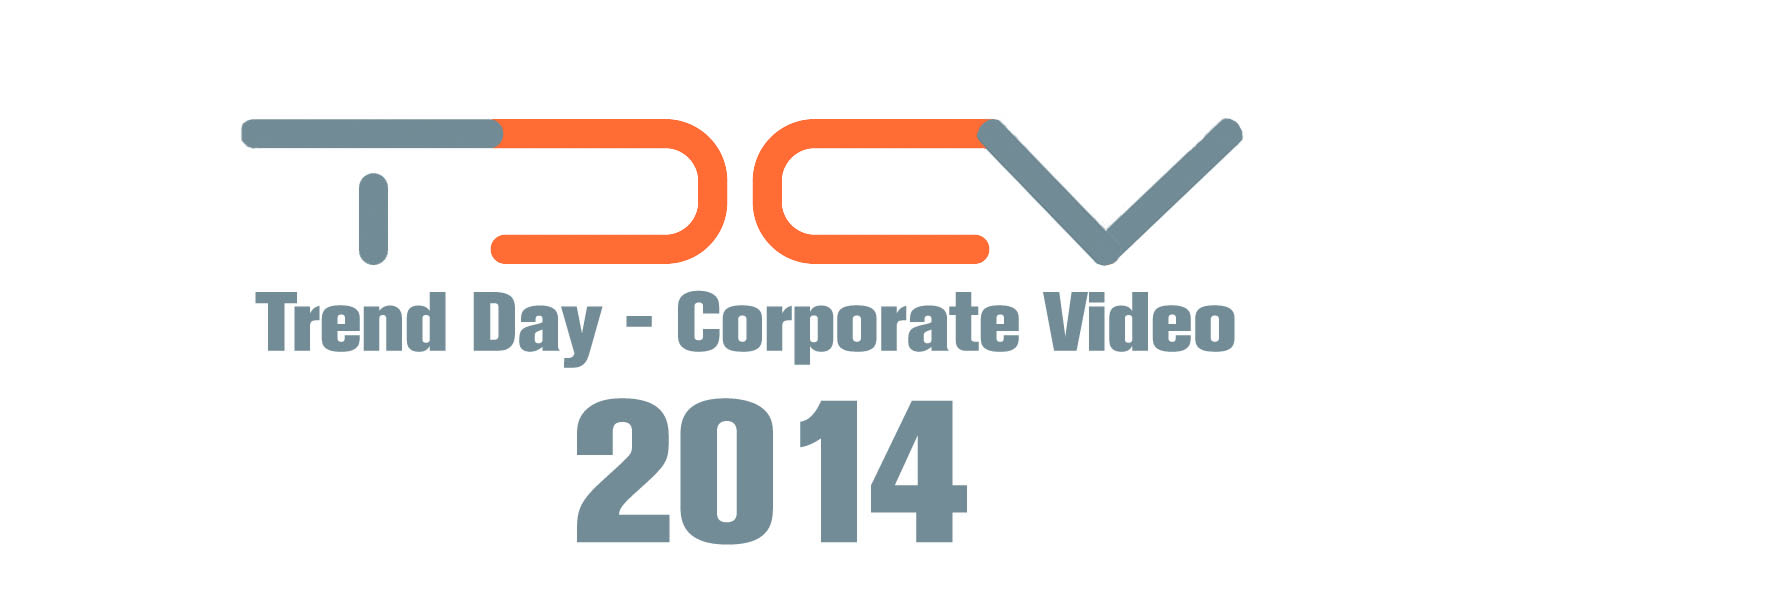 Logo Trend Day - Corporate Video